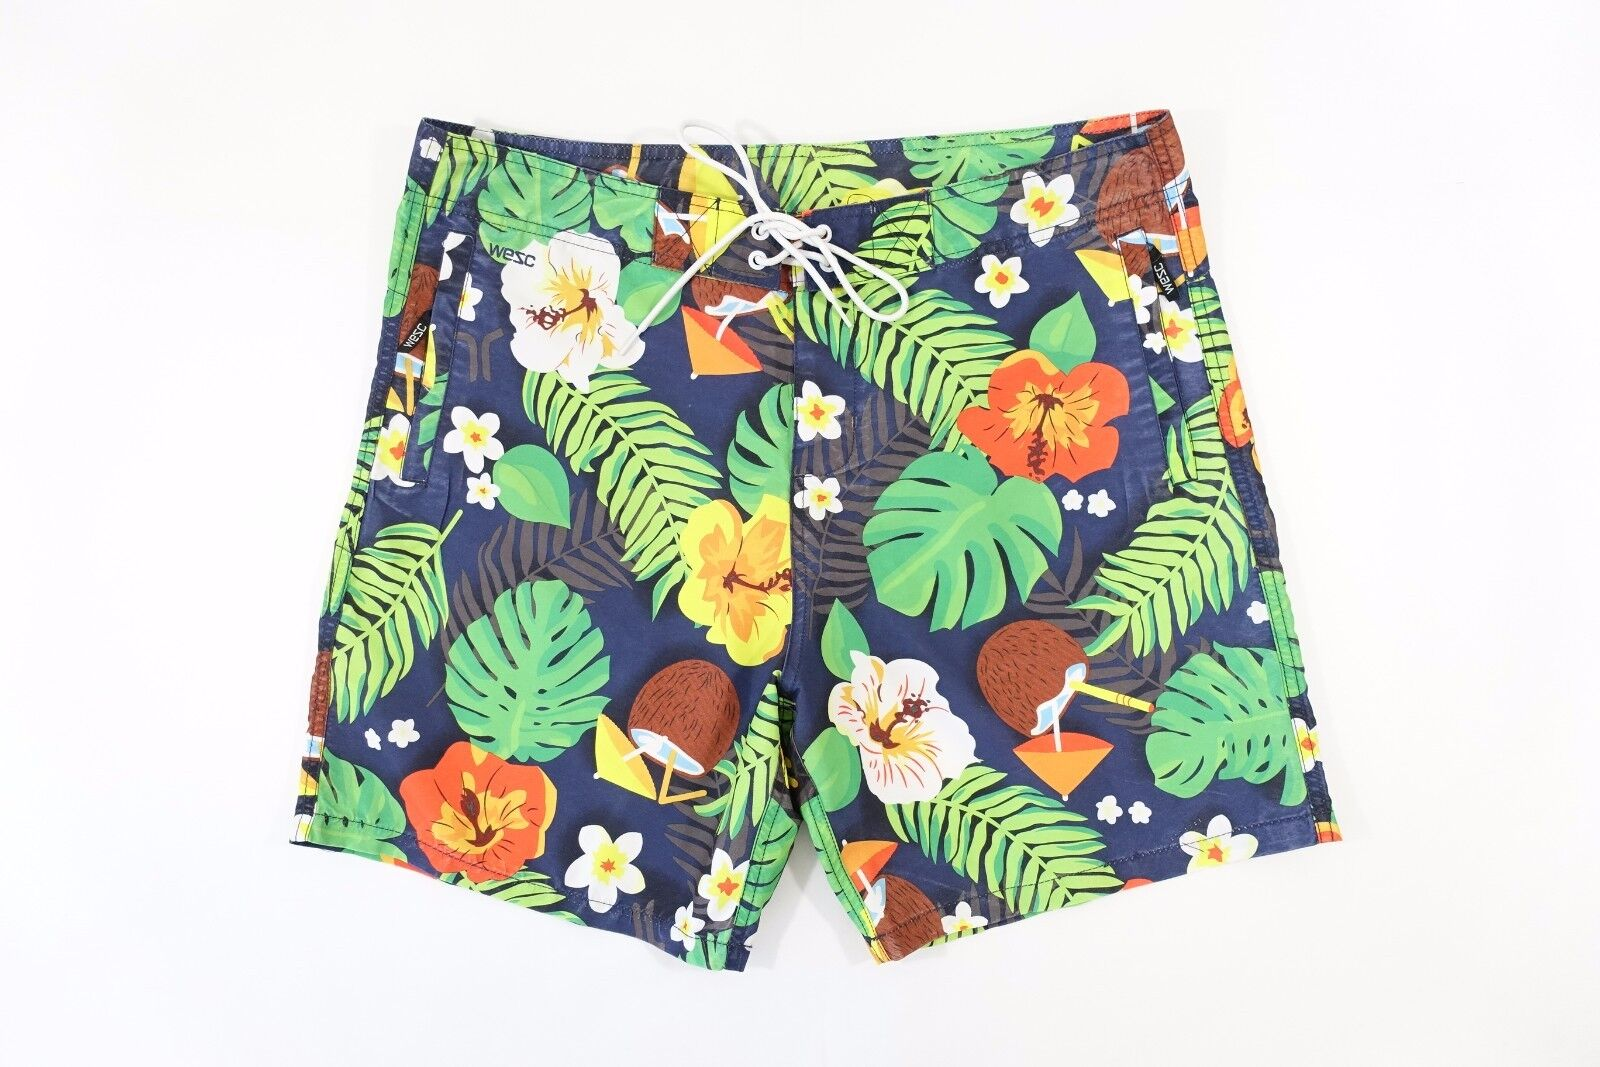 WESC WE ARE SUPERLATIVE GROUP TROPICAL FLORAL LARGE 36 SWIM BOARD SHORTS NWT